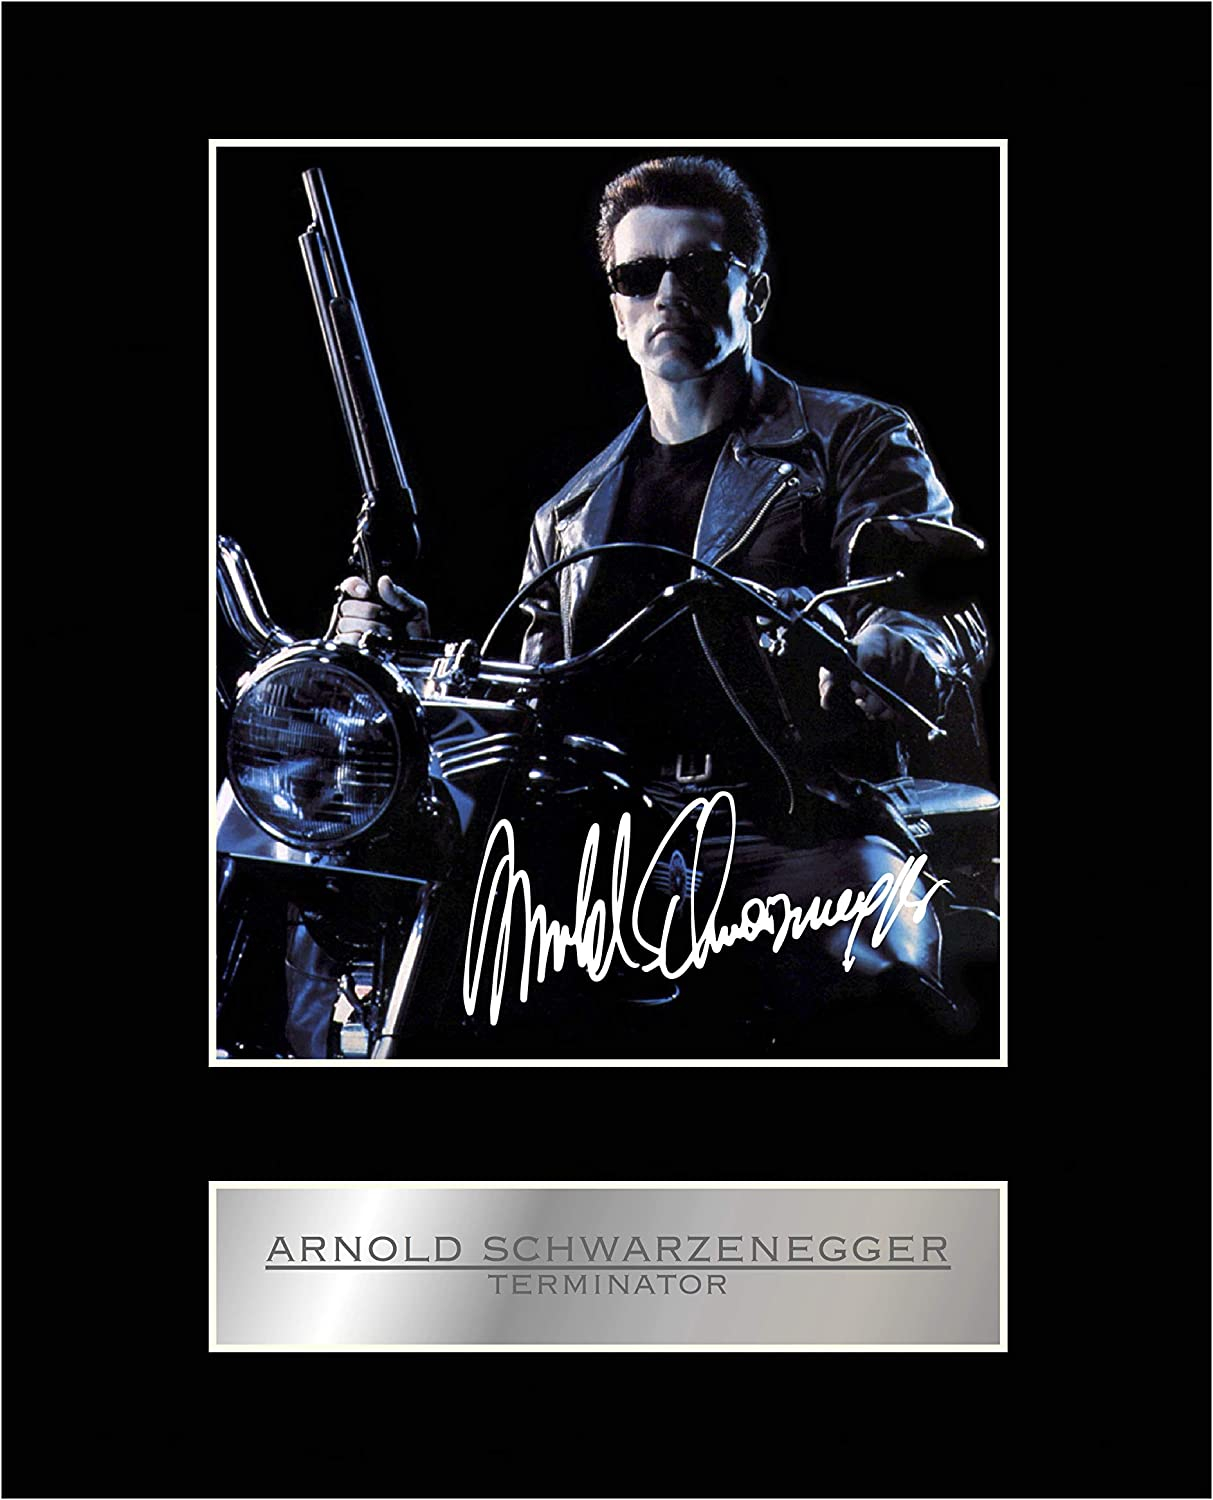 Arnold Schwarzenegger Signed Mounted Photo Display The Terminator #01 Autographed Gift Picture Print